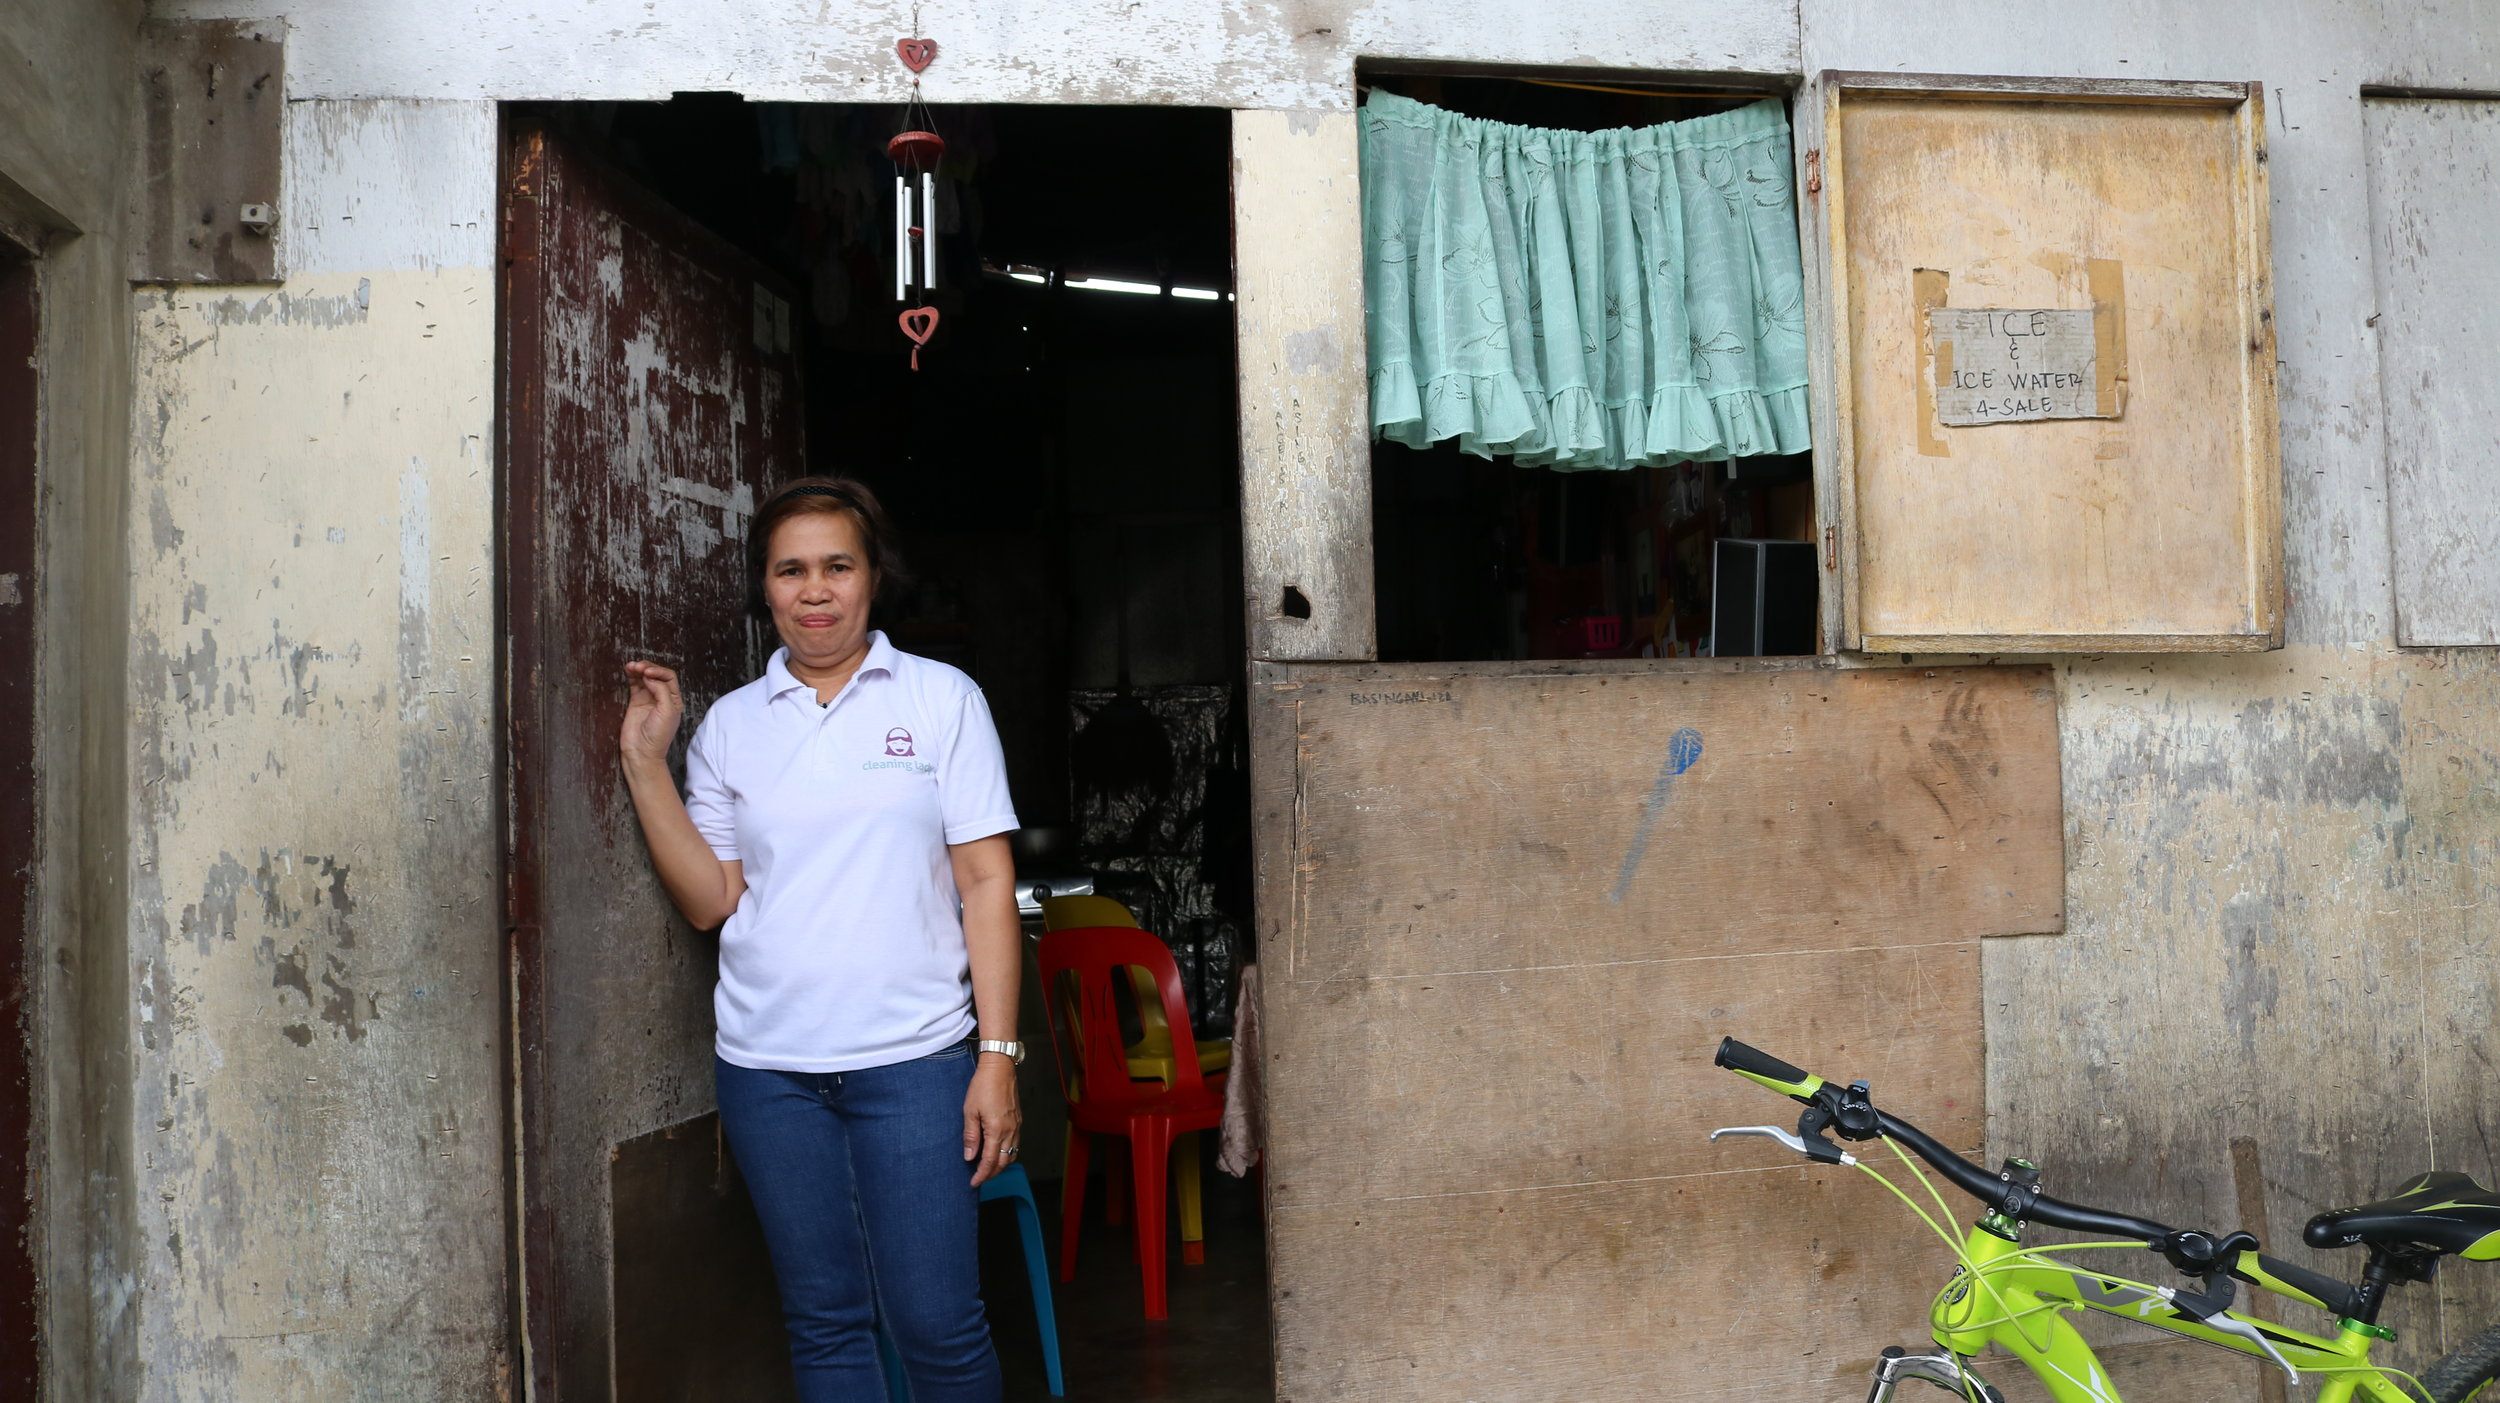 Rosemary Evangelista is part of the first batch of Cleaning Ladies and has been with the company for over two years now. She lives in Gawad Kalinga (GK), Manggahan, Parañaque, one of Cleaning Lady's partner communities.